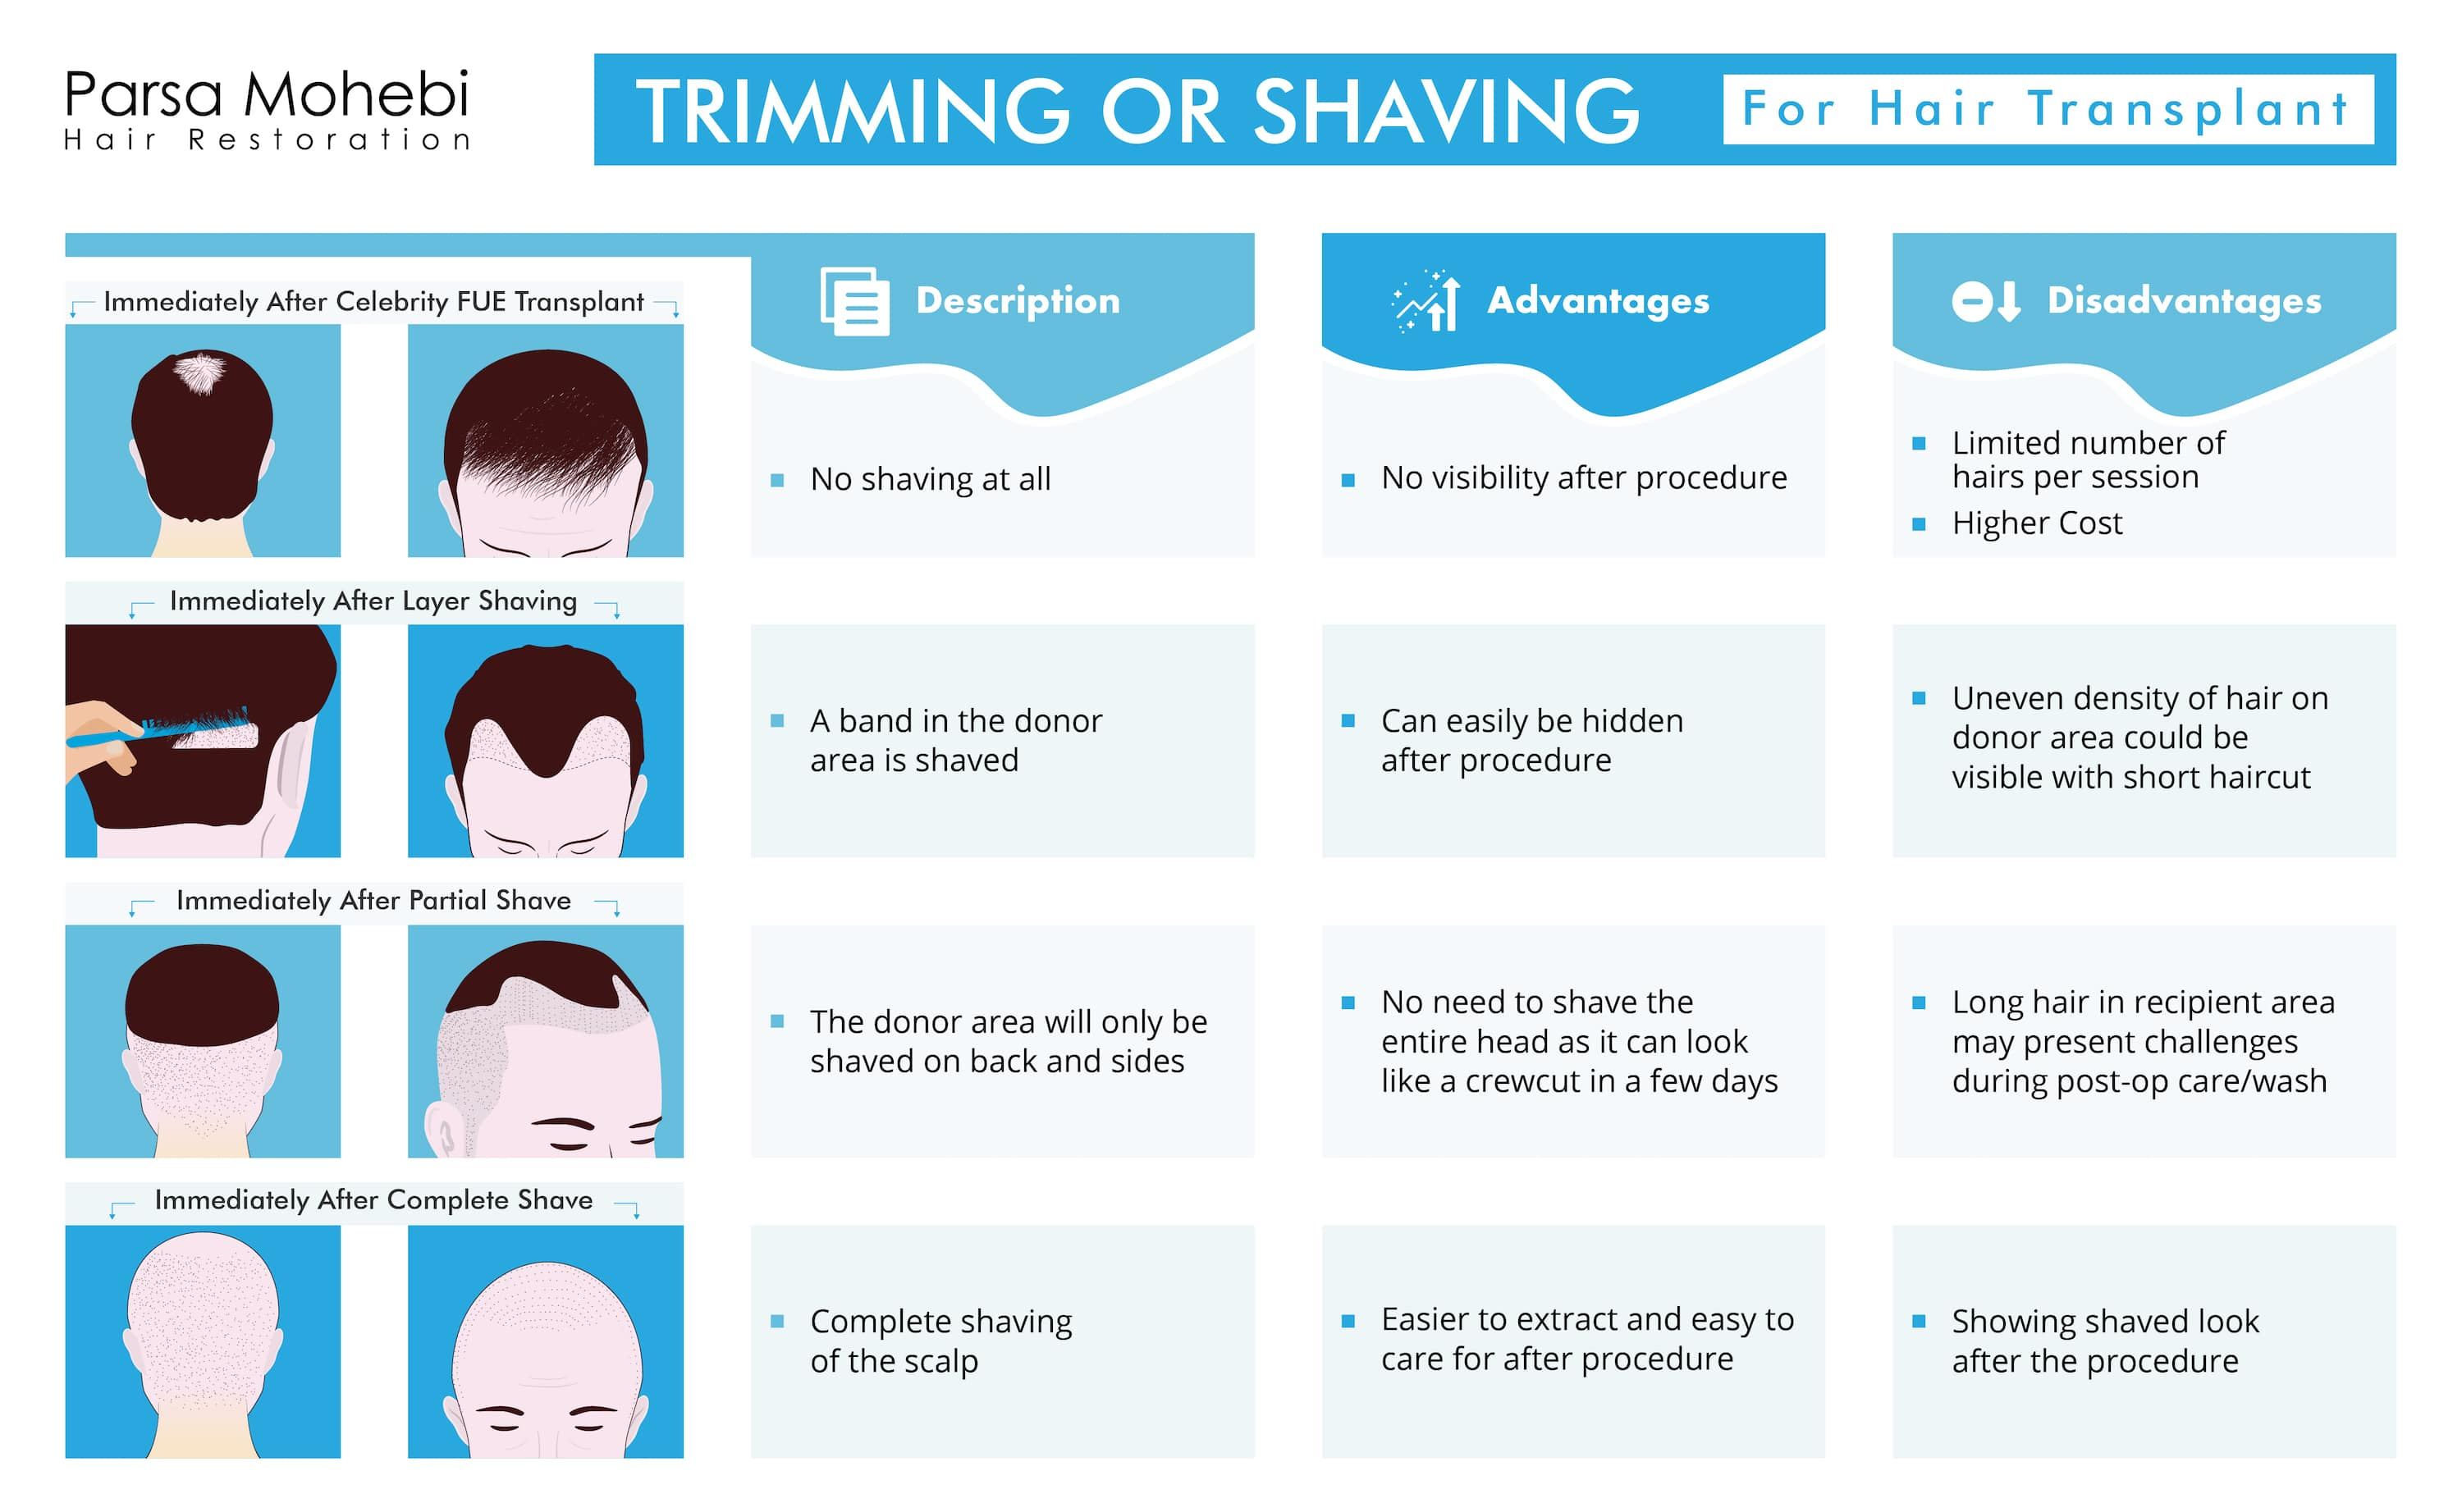 Shaving or trimming before a hair transplant